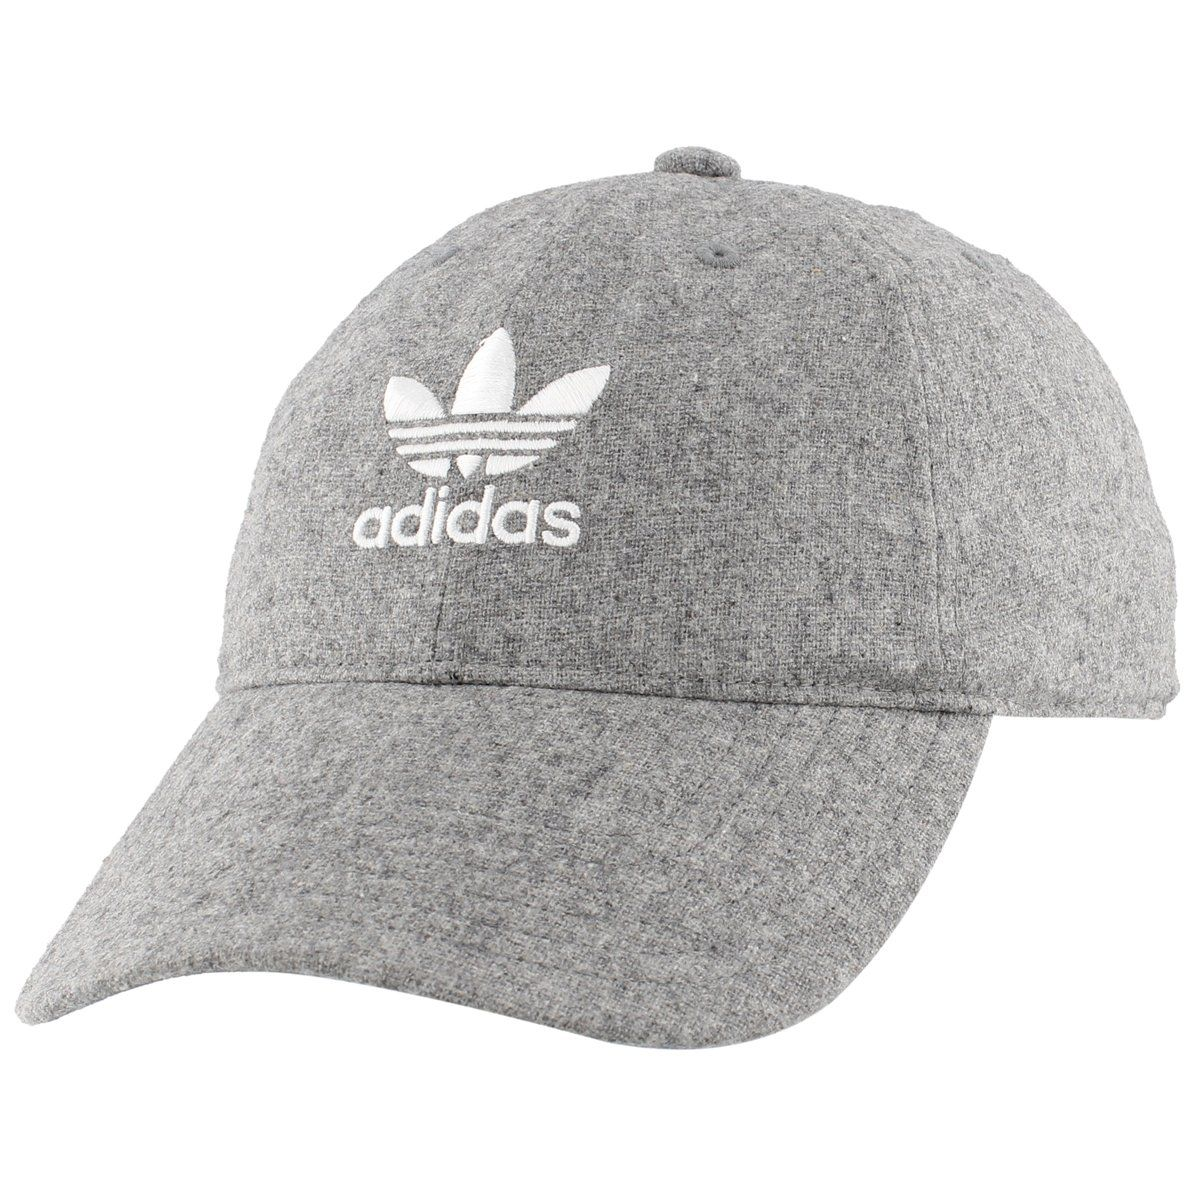 a363f04f65f adidas Mens Originals Relaxed Plus Strapback Cap Grey Chalk Pearl One Size     You can find more details by visiting the image link.